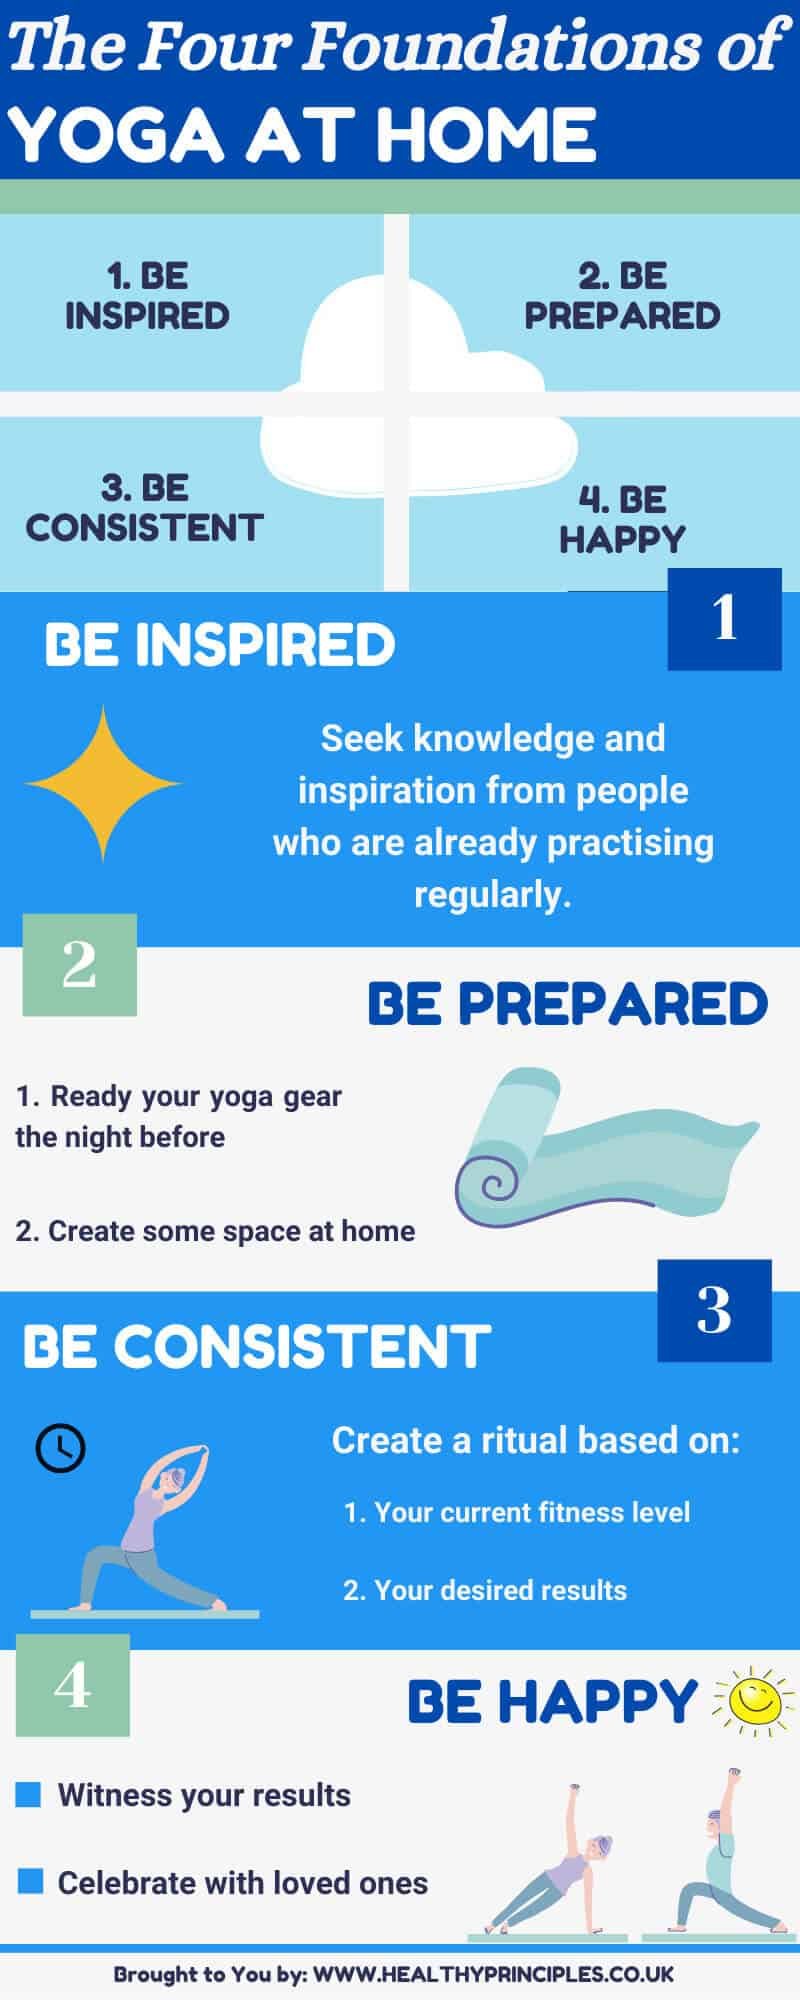 yoga at home infographic featuring the four foundations to yoga at home